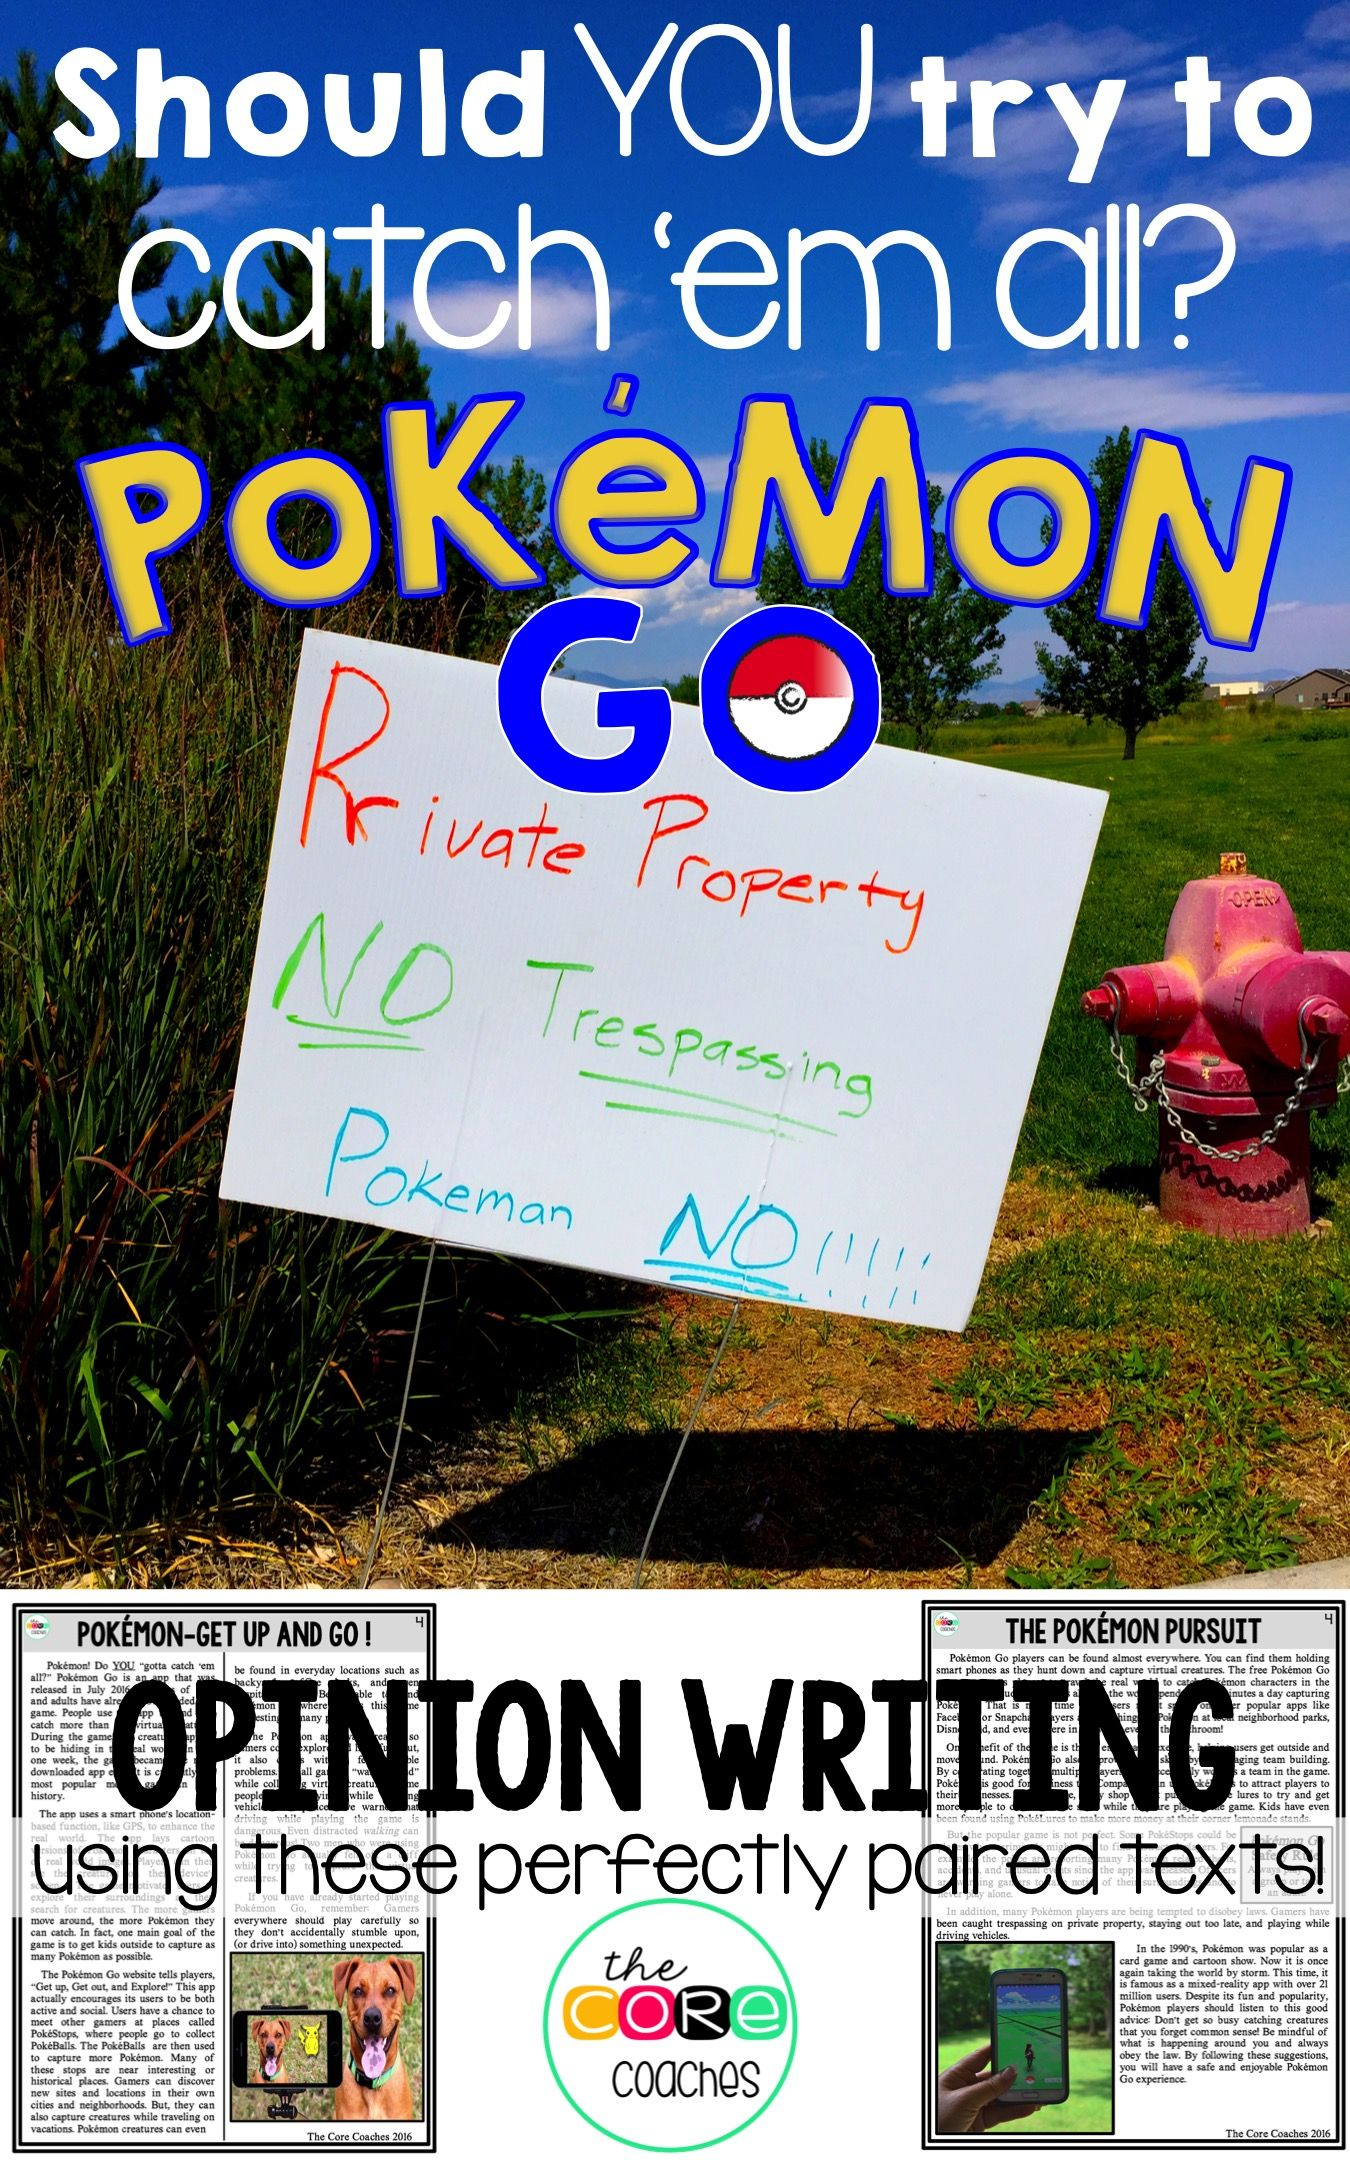 Fake Pokemon GO image